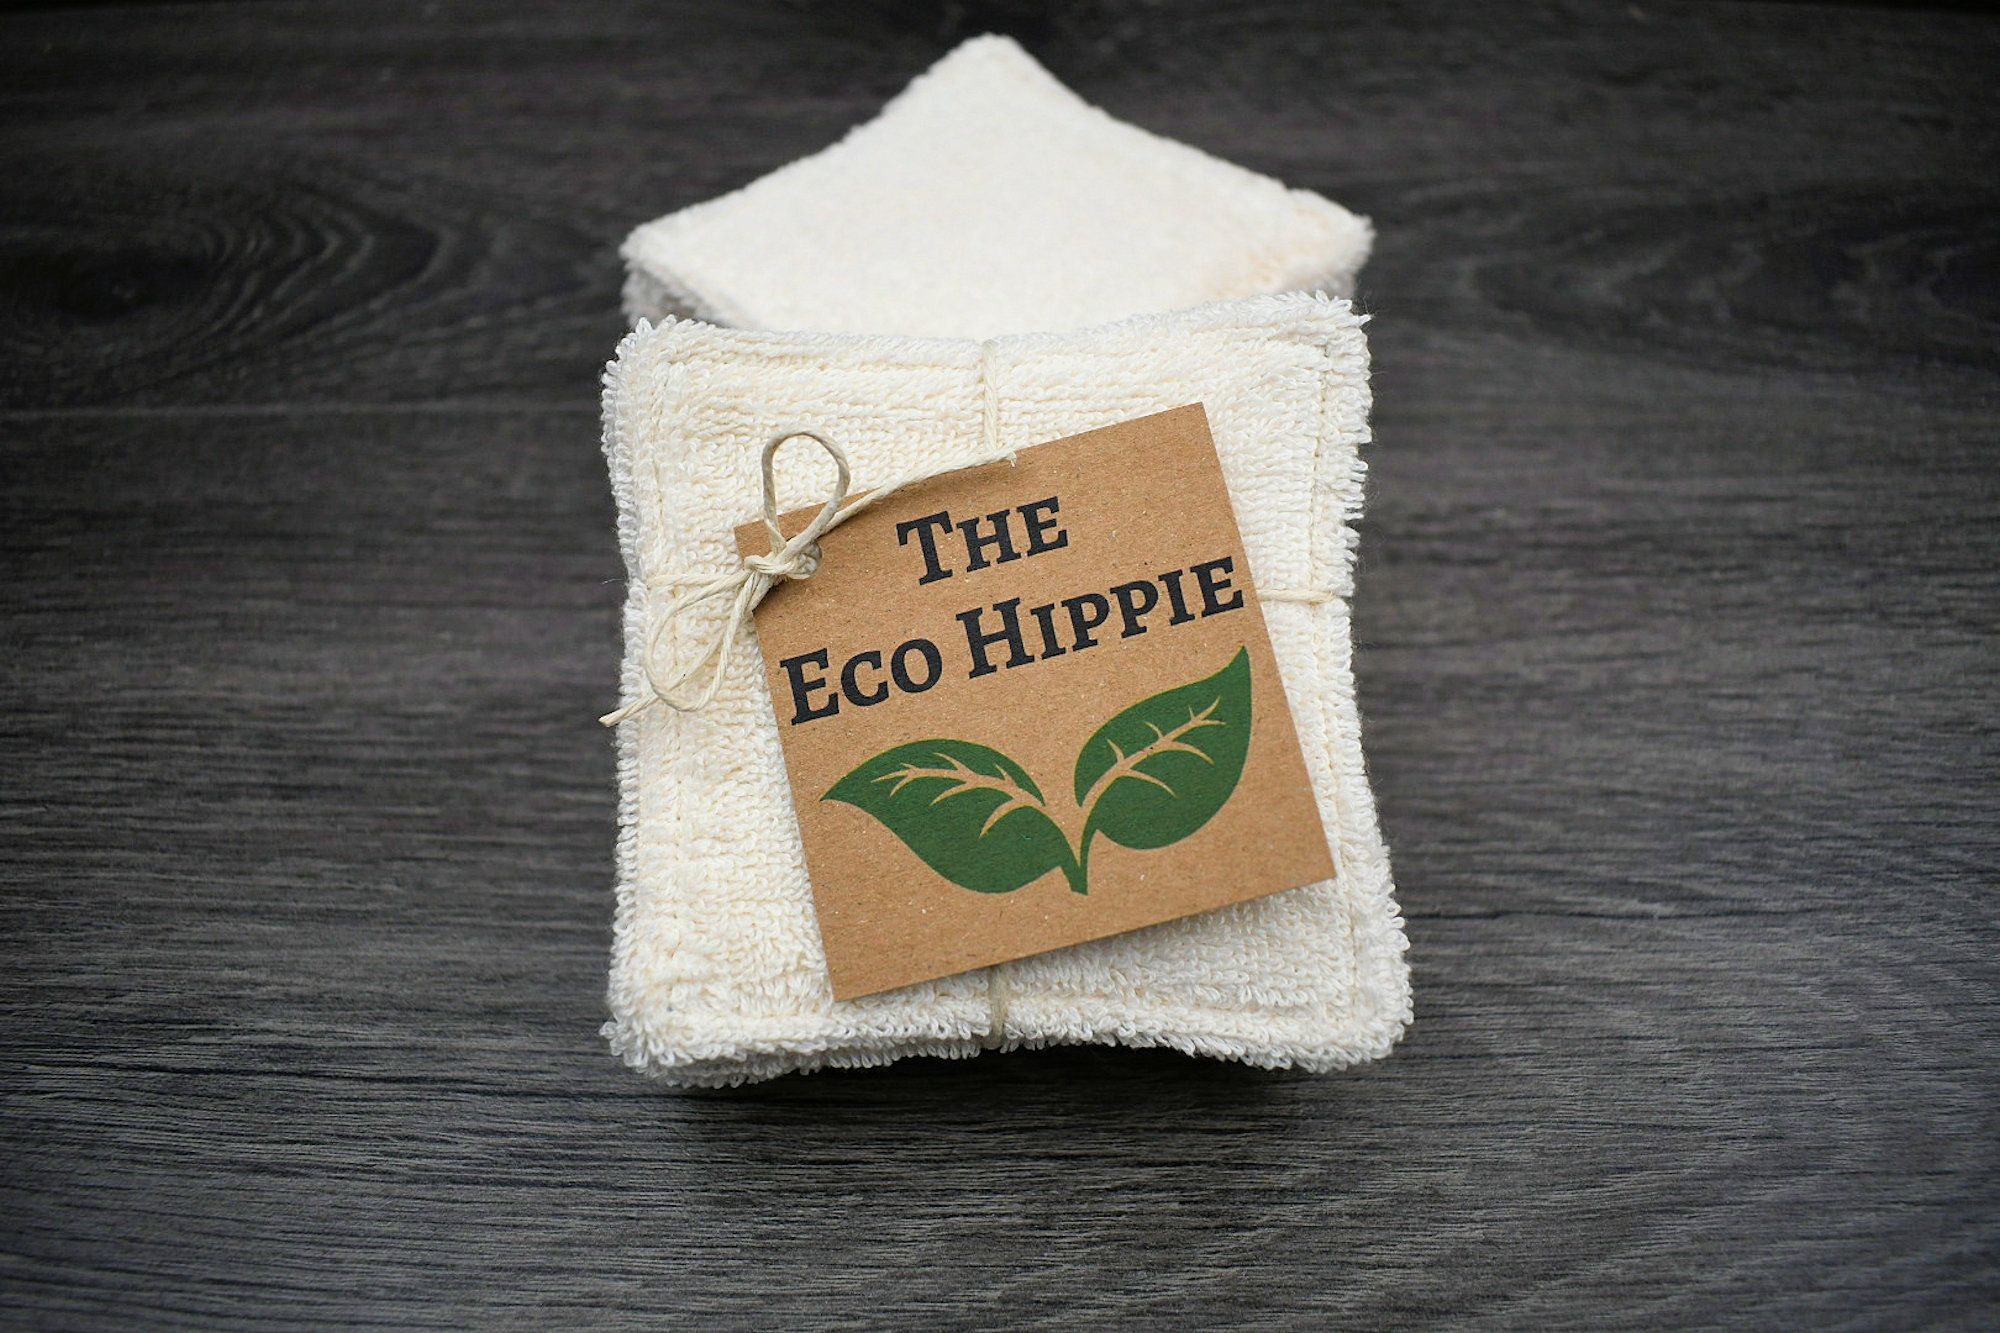 Pin on The Eco Hippie